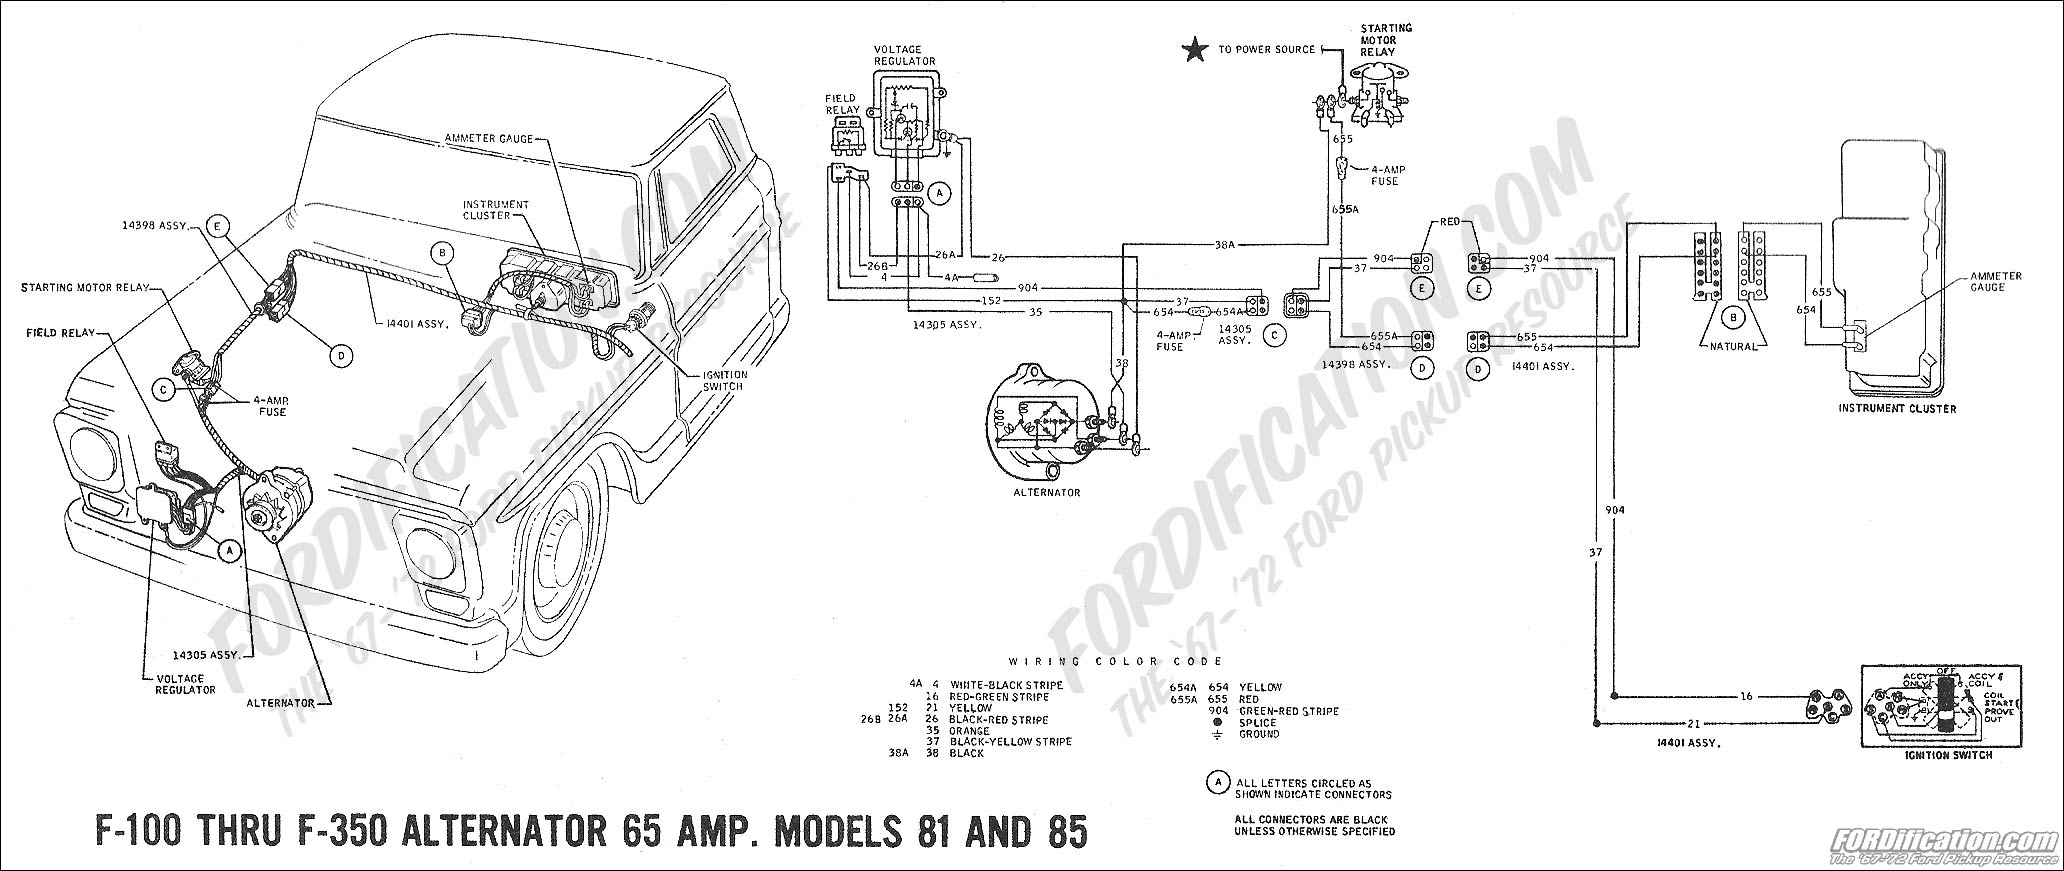 Ford 302 alternator wiring diagram wiring diagram database ford truck technical drawings and schematics section h wiring 1976 ford 302 alternator wiring diagram ford 302 alternator wiring diagram asfbconference2016 Gallery